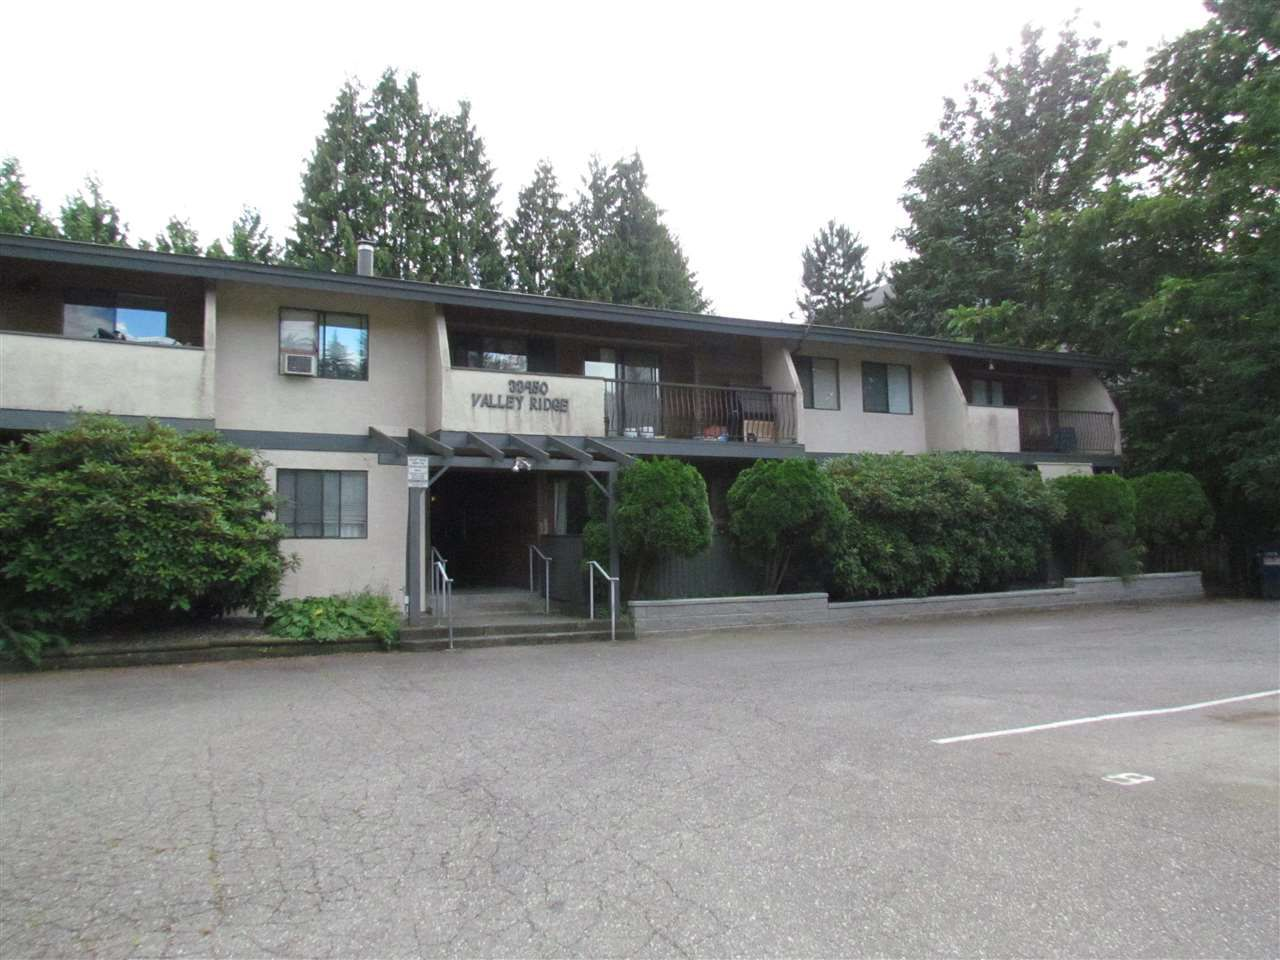 """Main Photo: 303 33450 GEORGE FERGUSON Way in Abbotsford: Central Abbotsford Condo for sale in """"Valley Ridge"""" : MLS®# R2089583"""